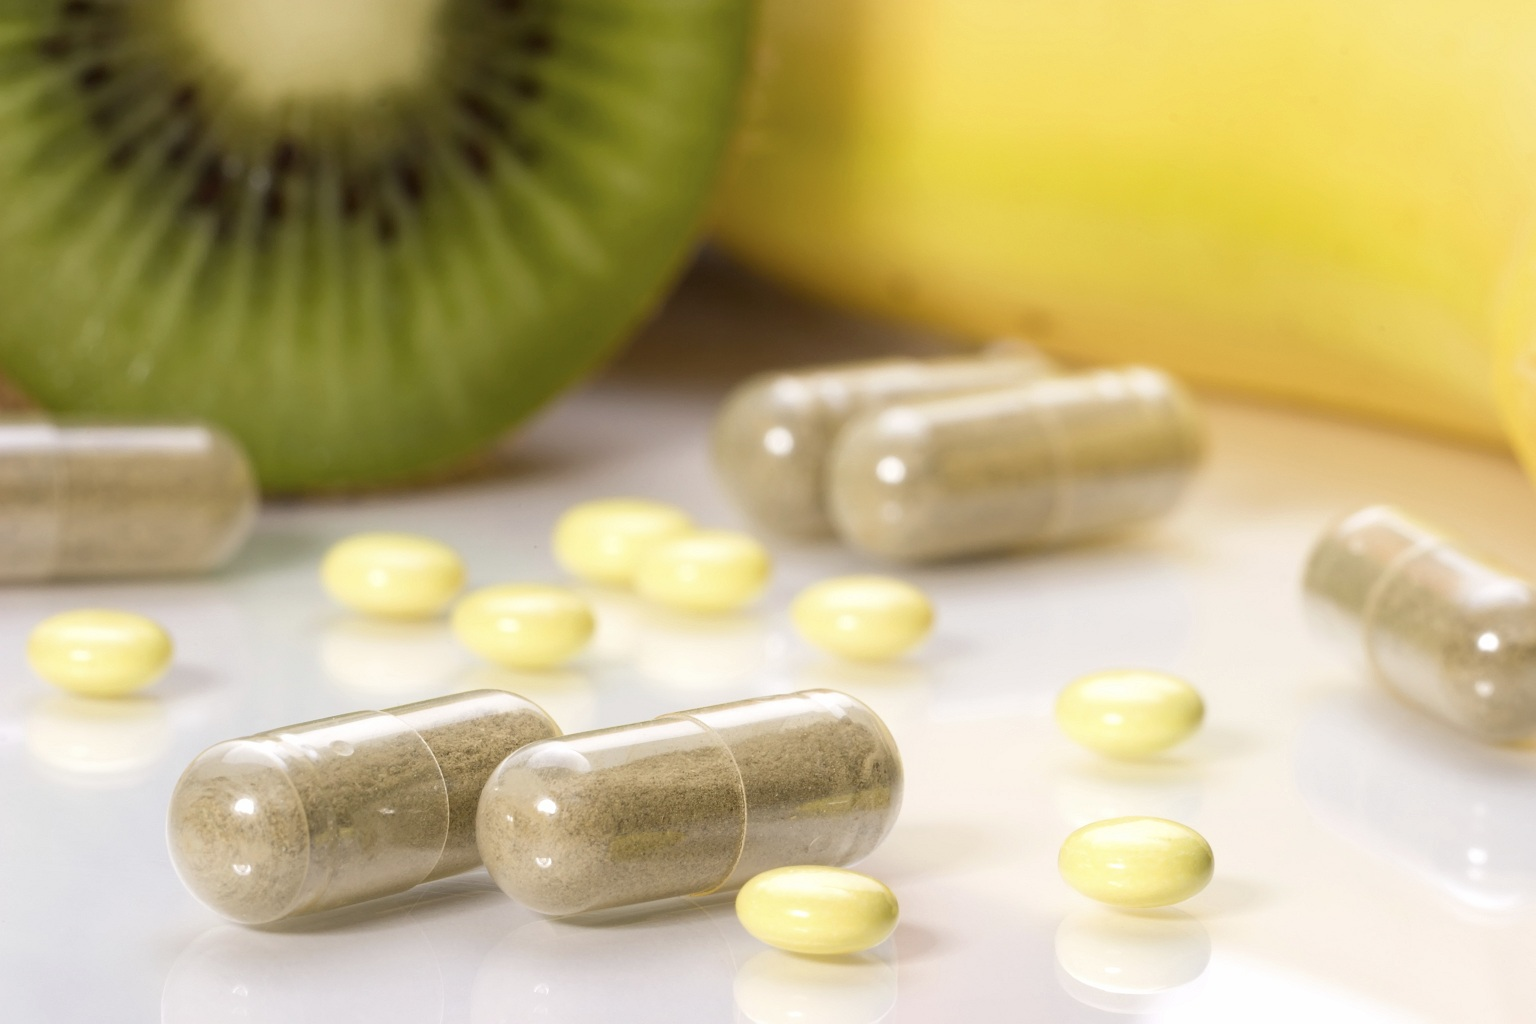 Pills or fruits